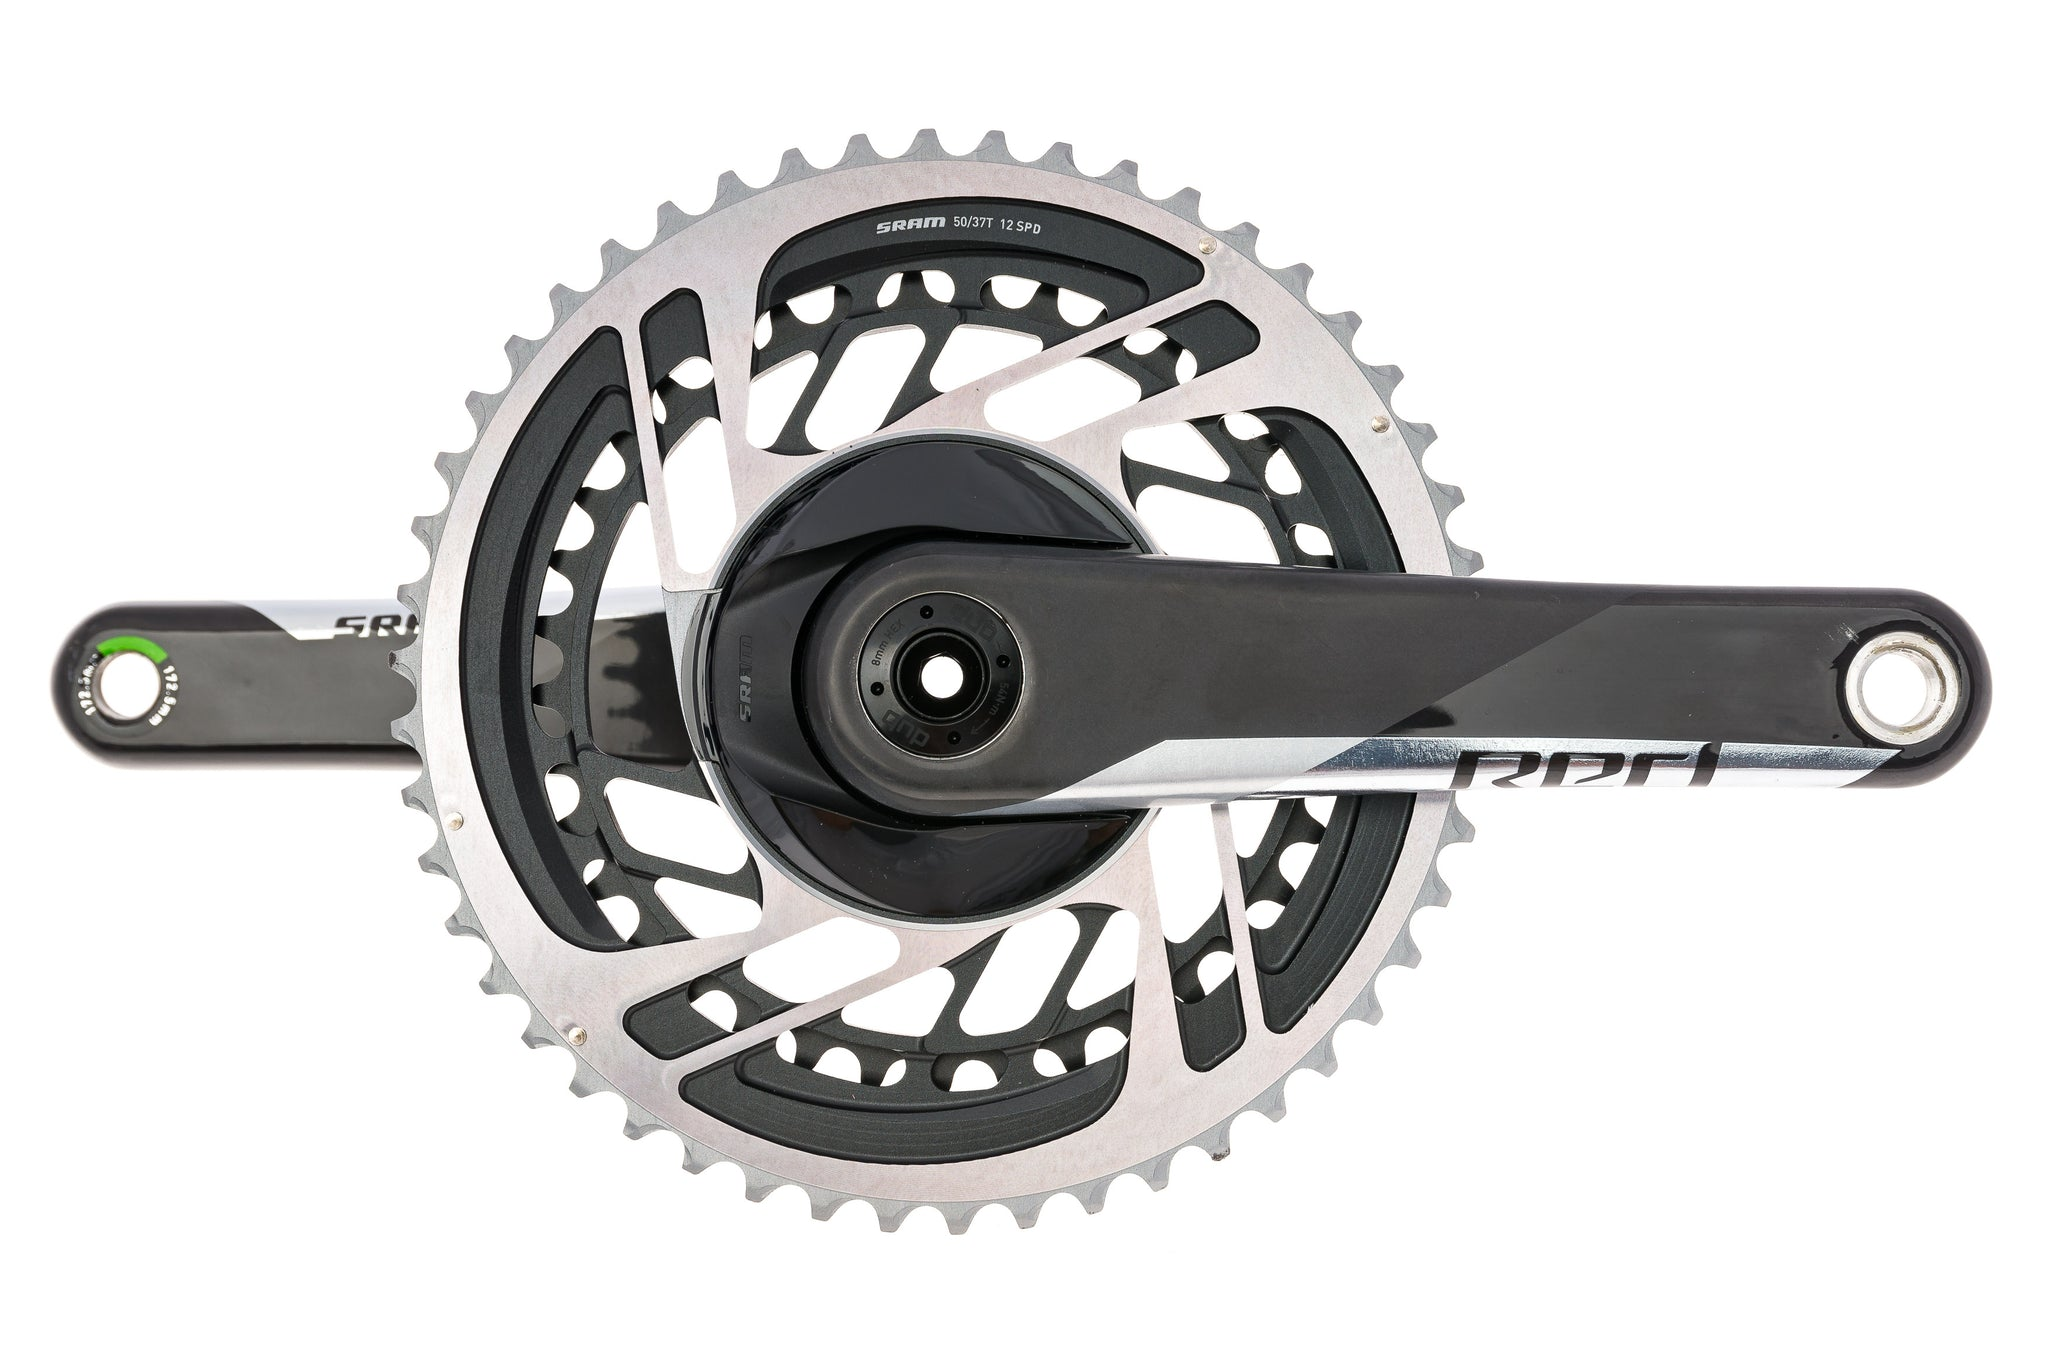 SRAM Red AXS Carbon crank set